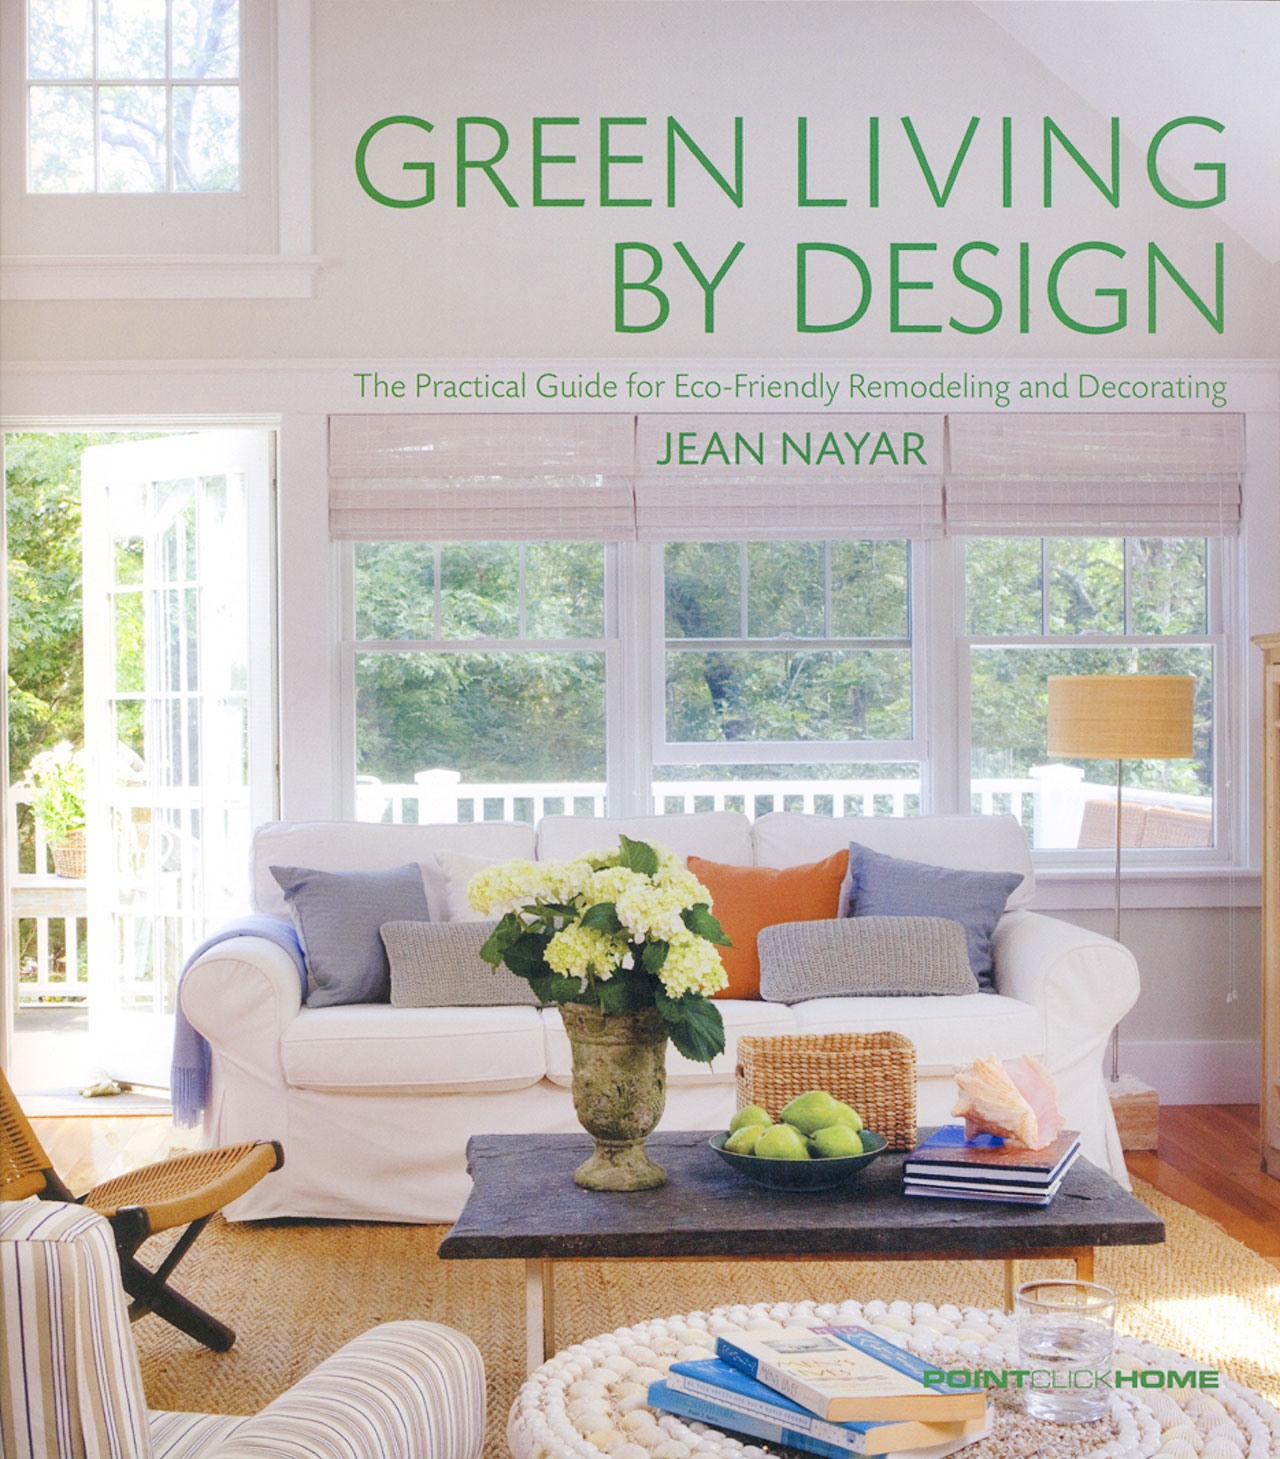 06_News_GREEN-LIVING-BY-DESIGN-by-J-Nayar-1_web_w1280